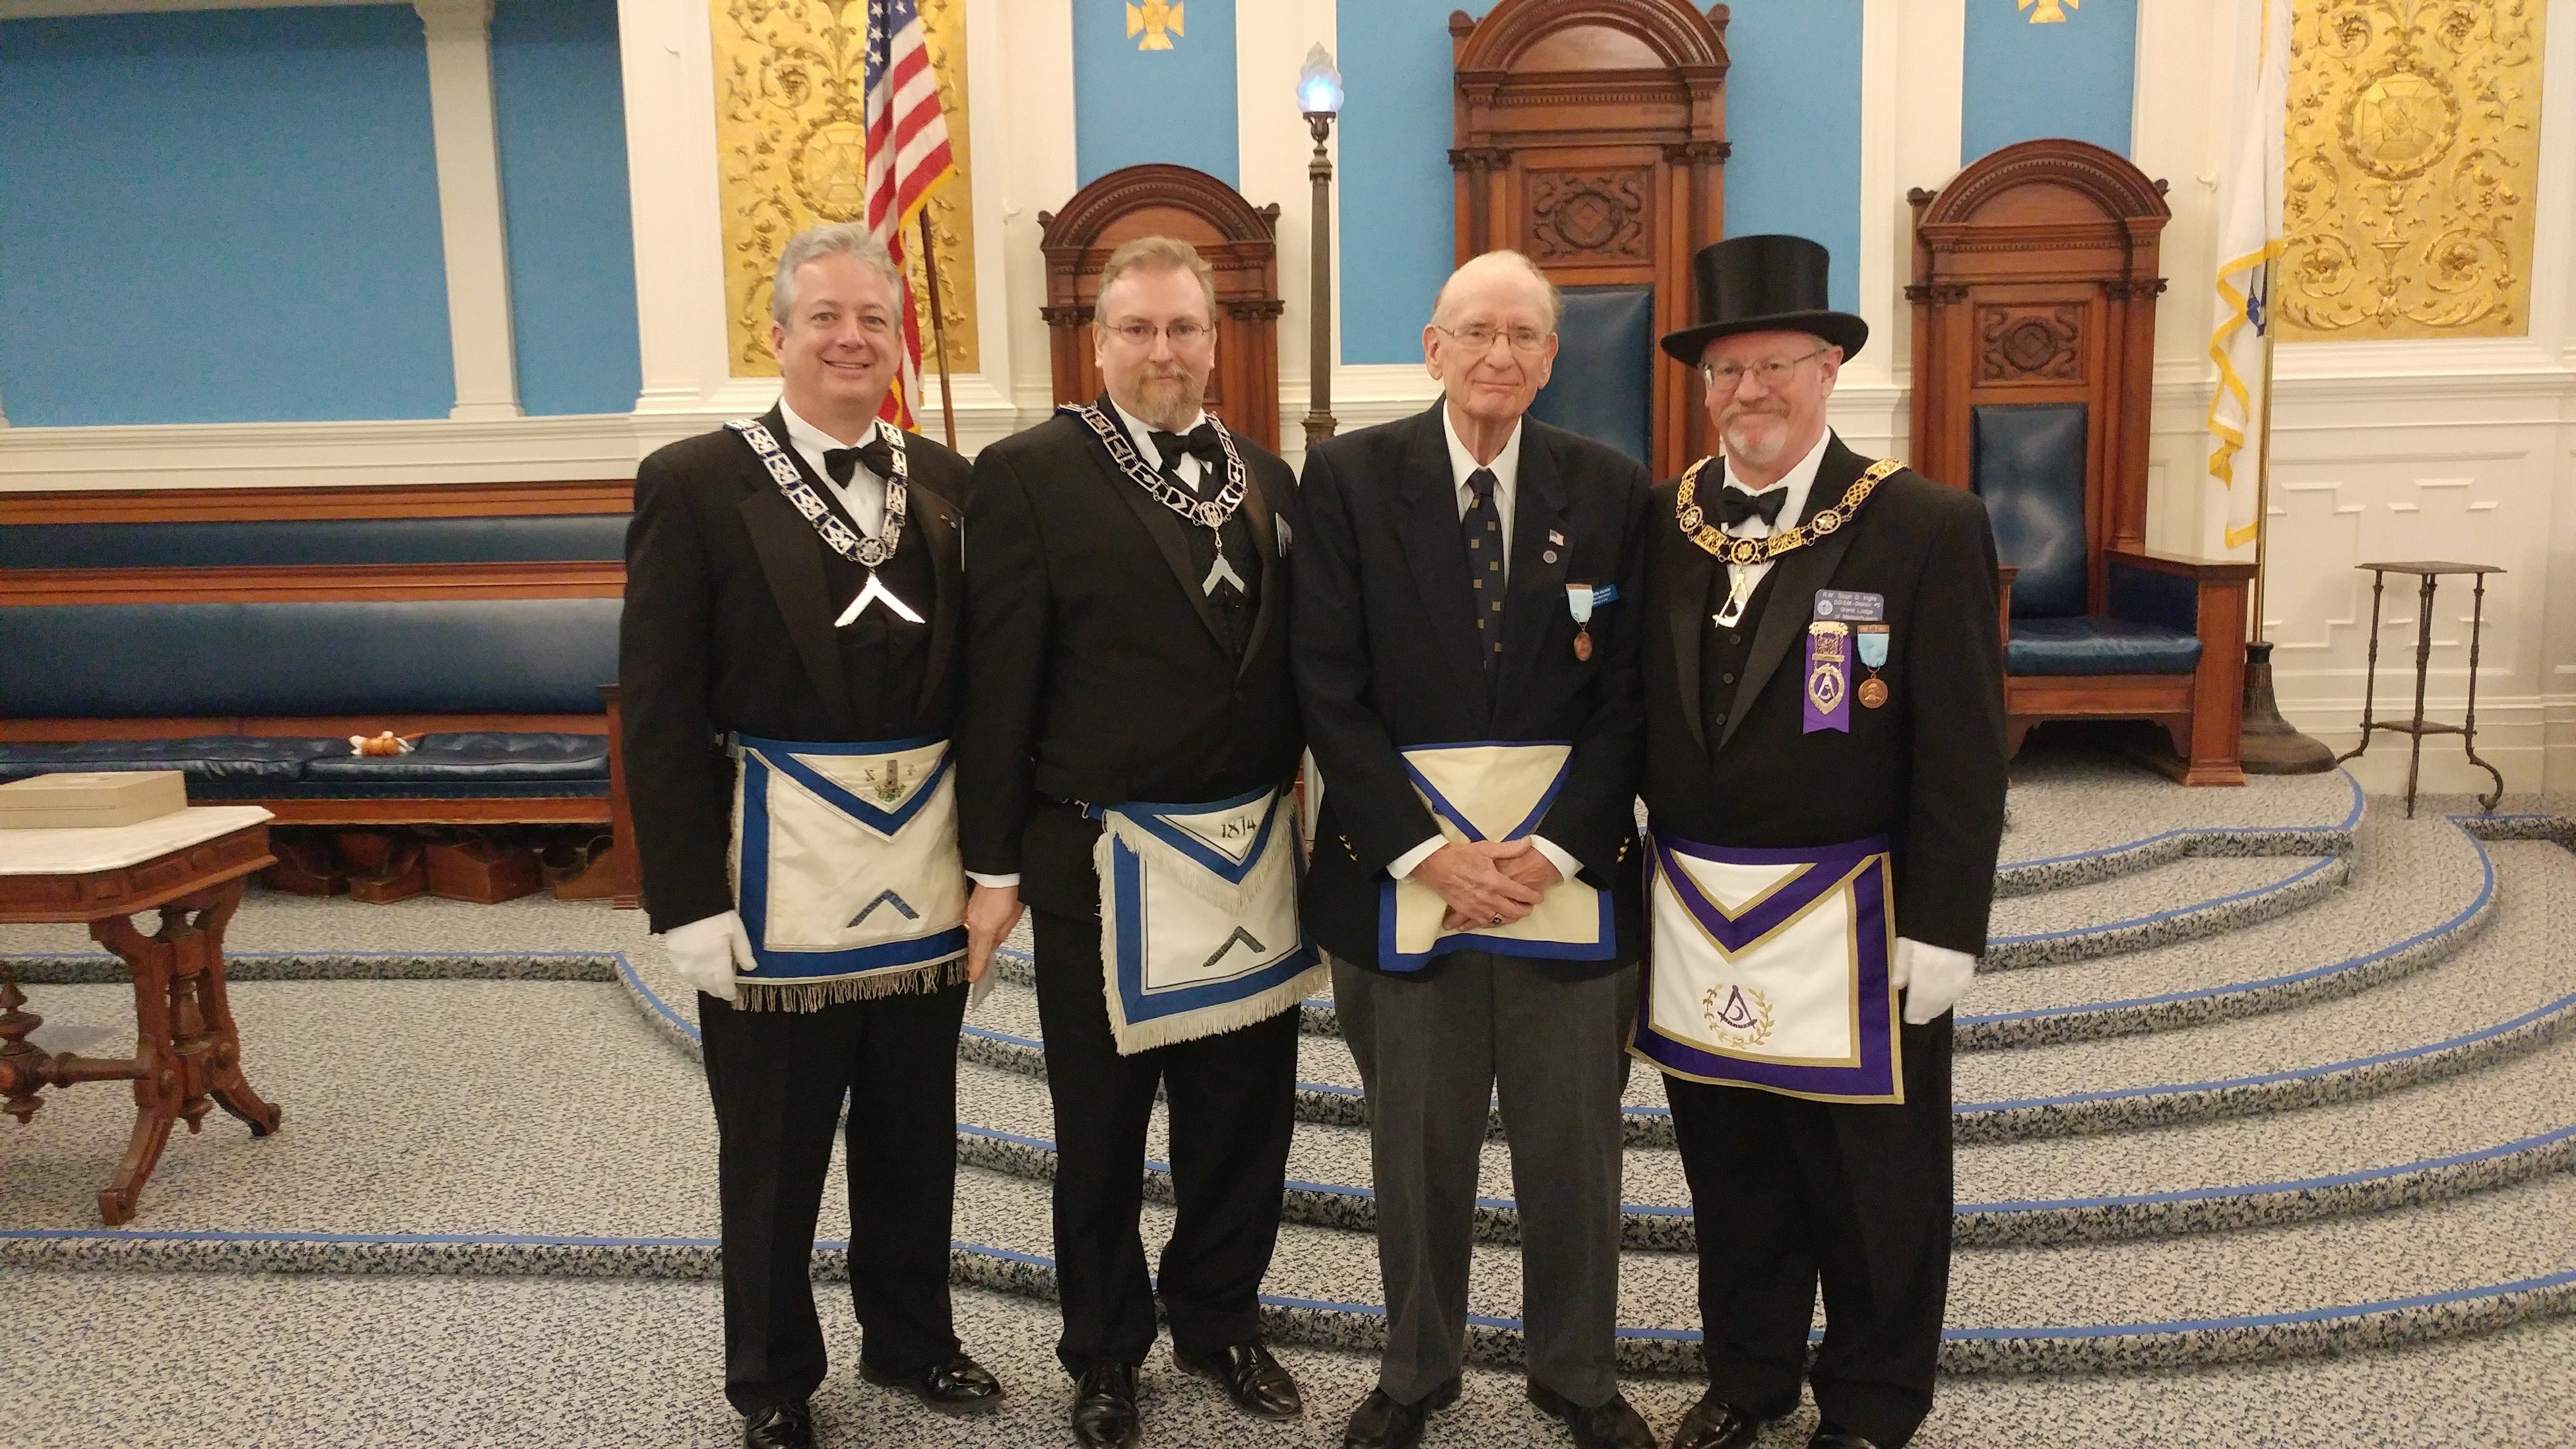 Brother Pete Gilson Receives 50 Year Medal